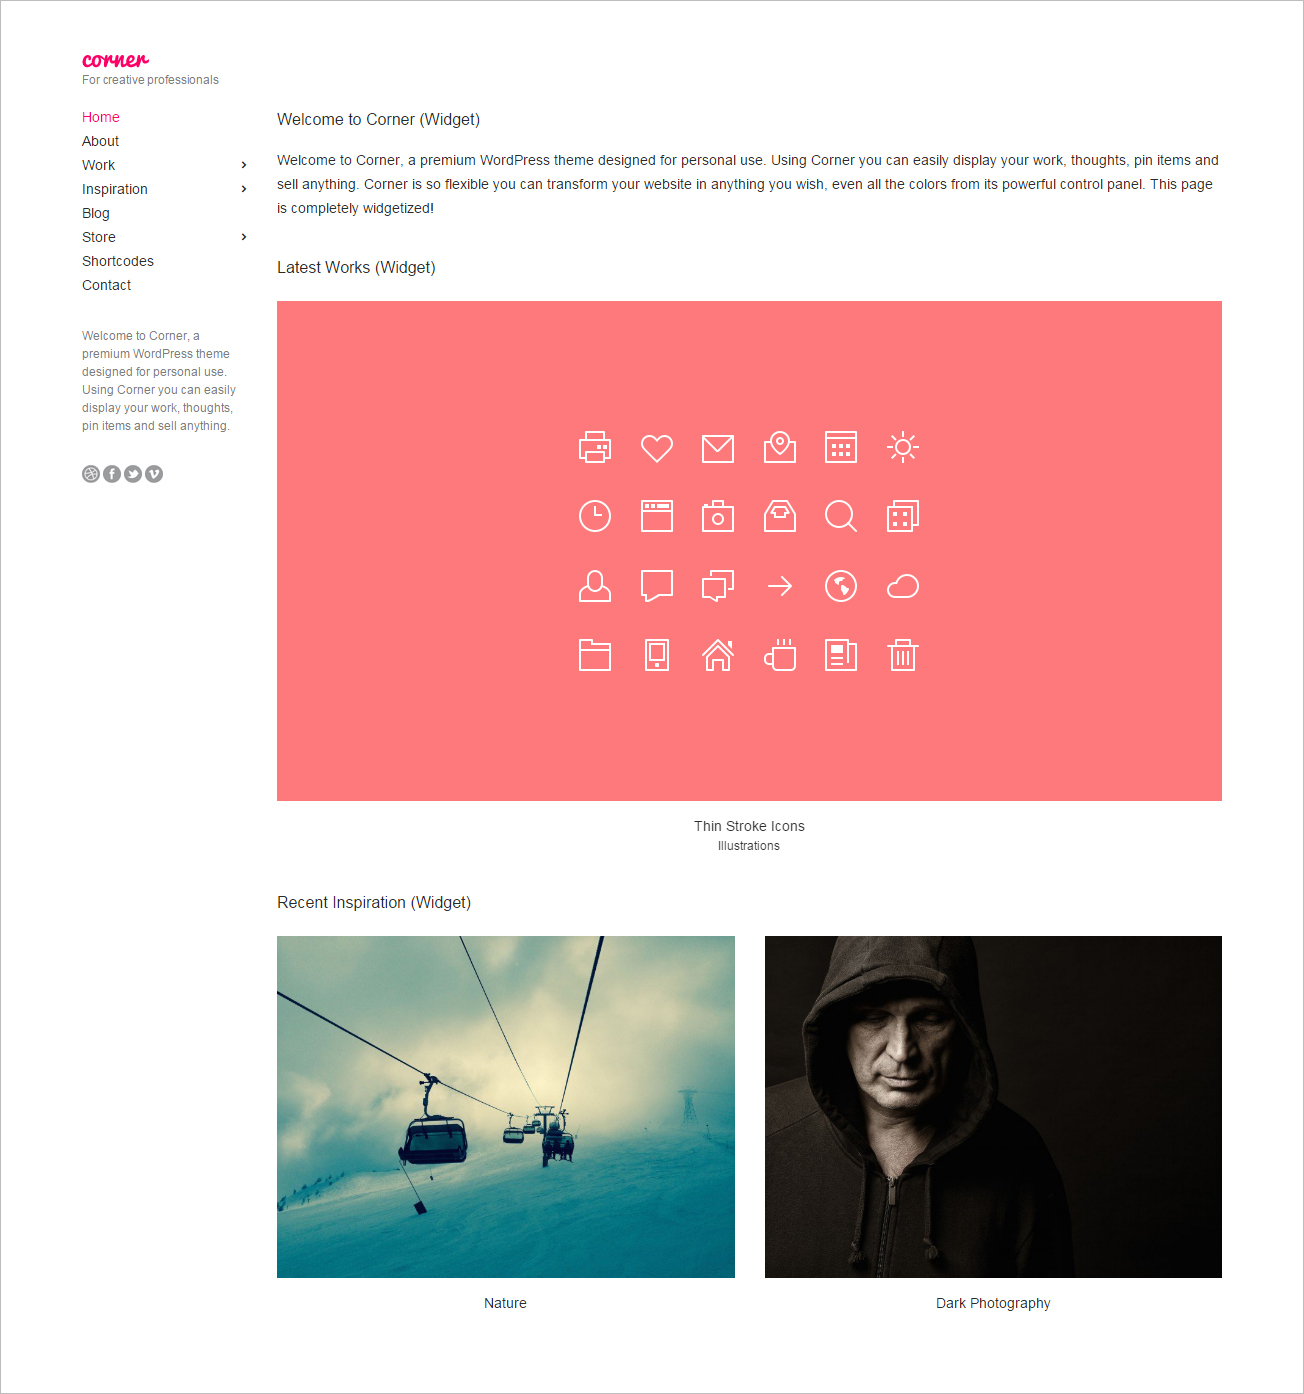 All-in-One WordPress Theme for Creative Professionals